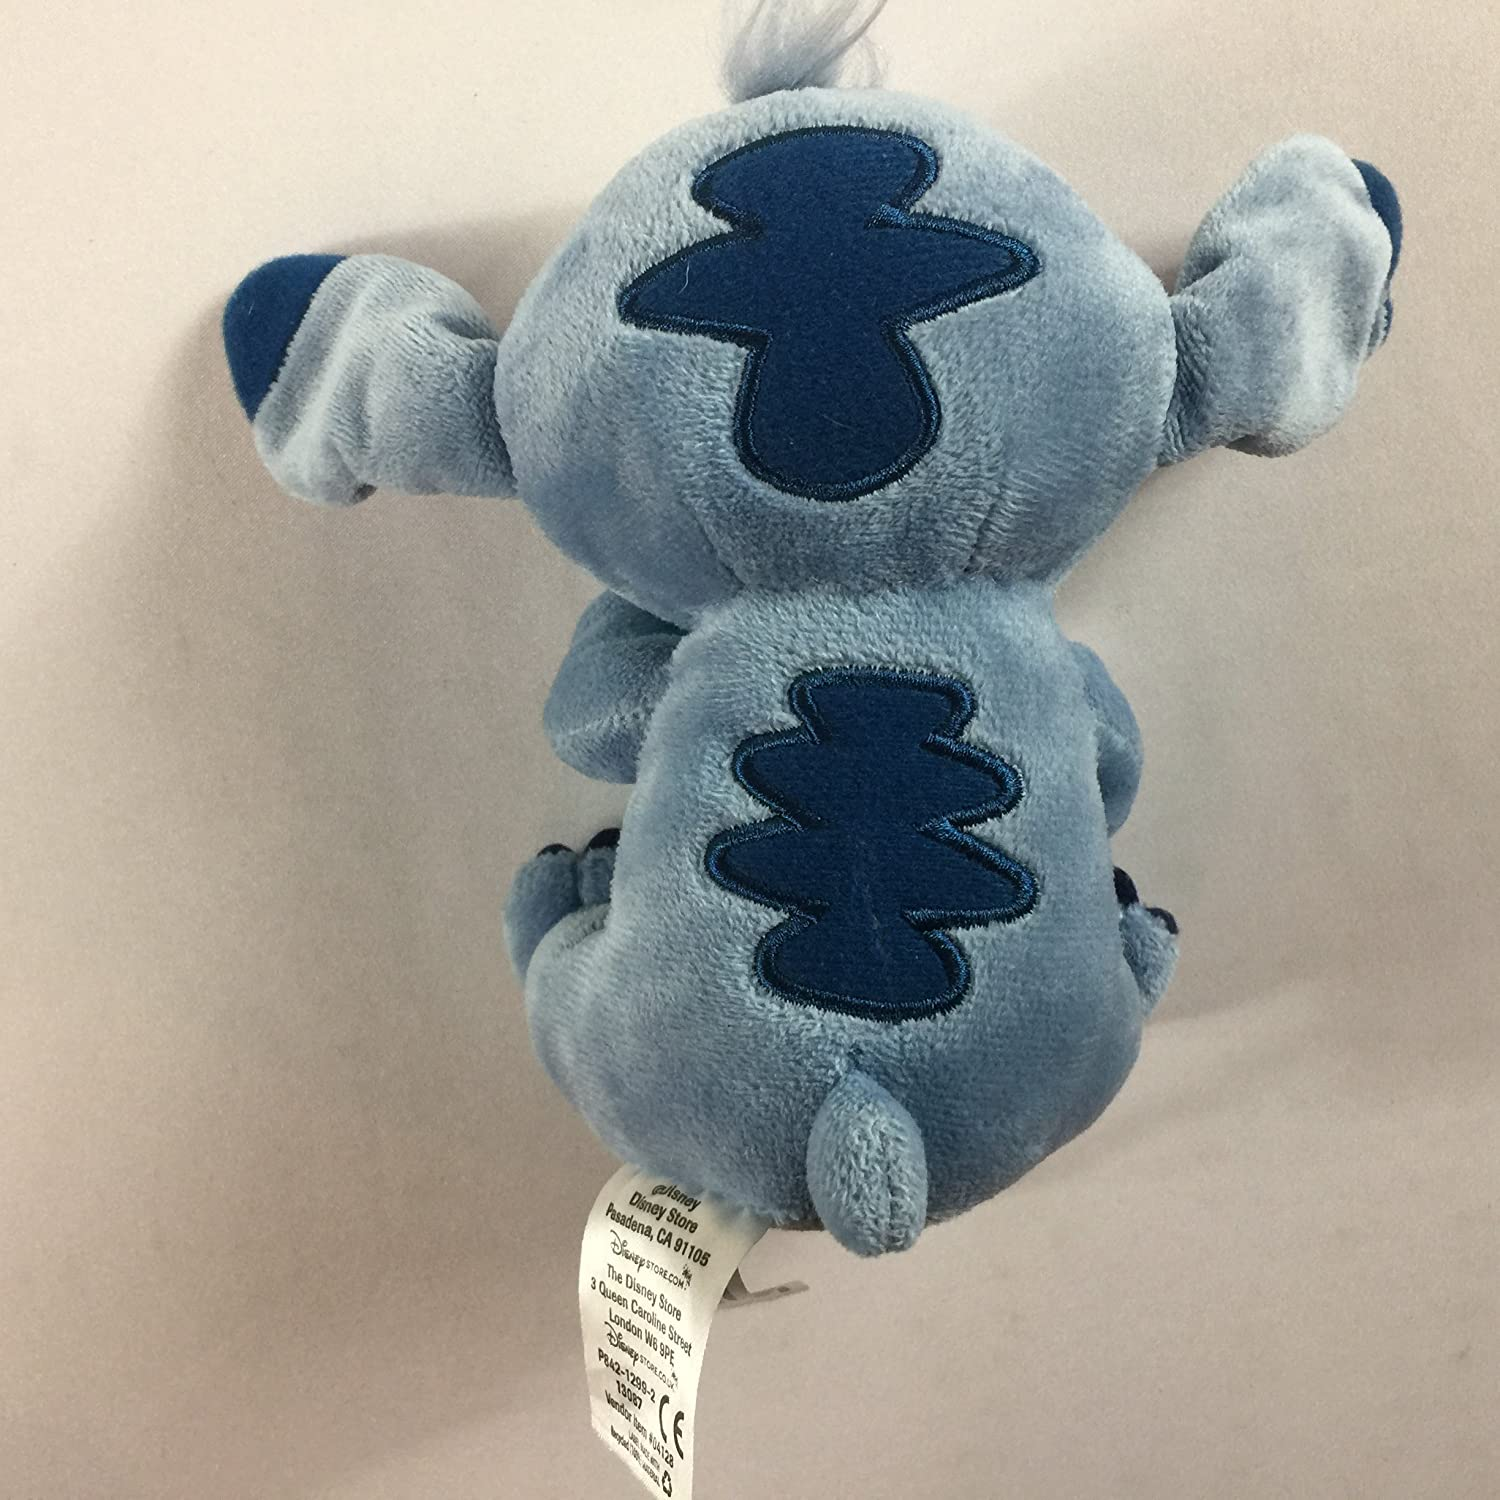 Amazon Com Dbs Disney Store Stitch Plush Small Stuffed 6 Toy Lilo Beans Alien Right Hand Heart Toys Games